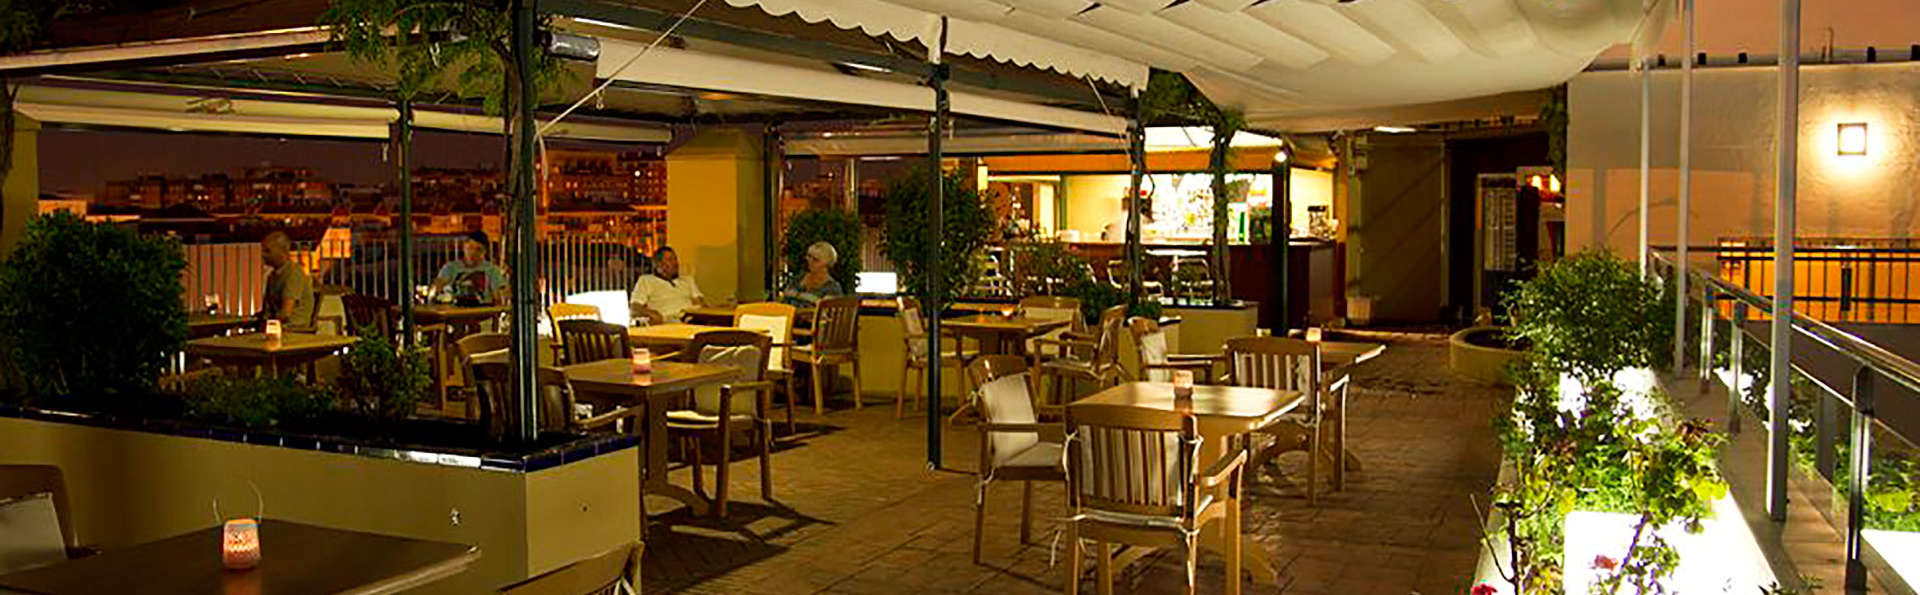 Hotel Don Paco - EDIT_terrace1.jpg